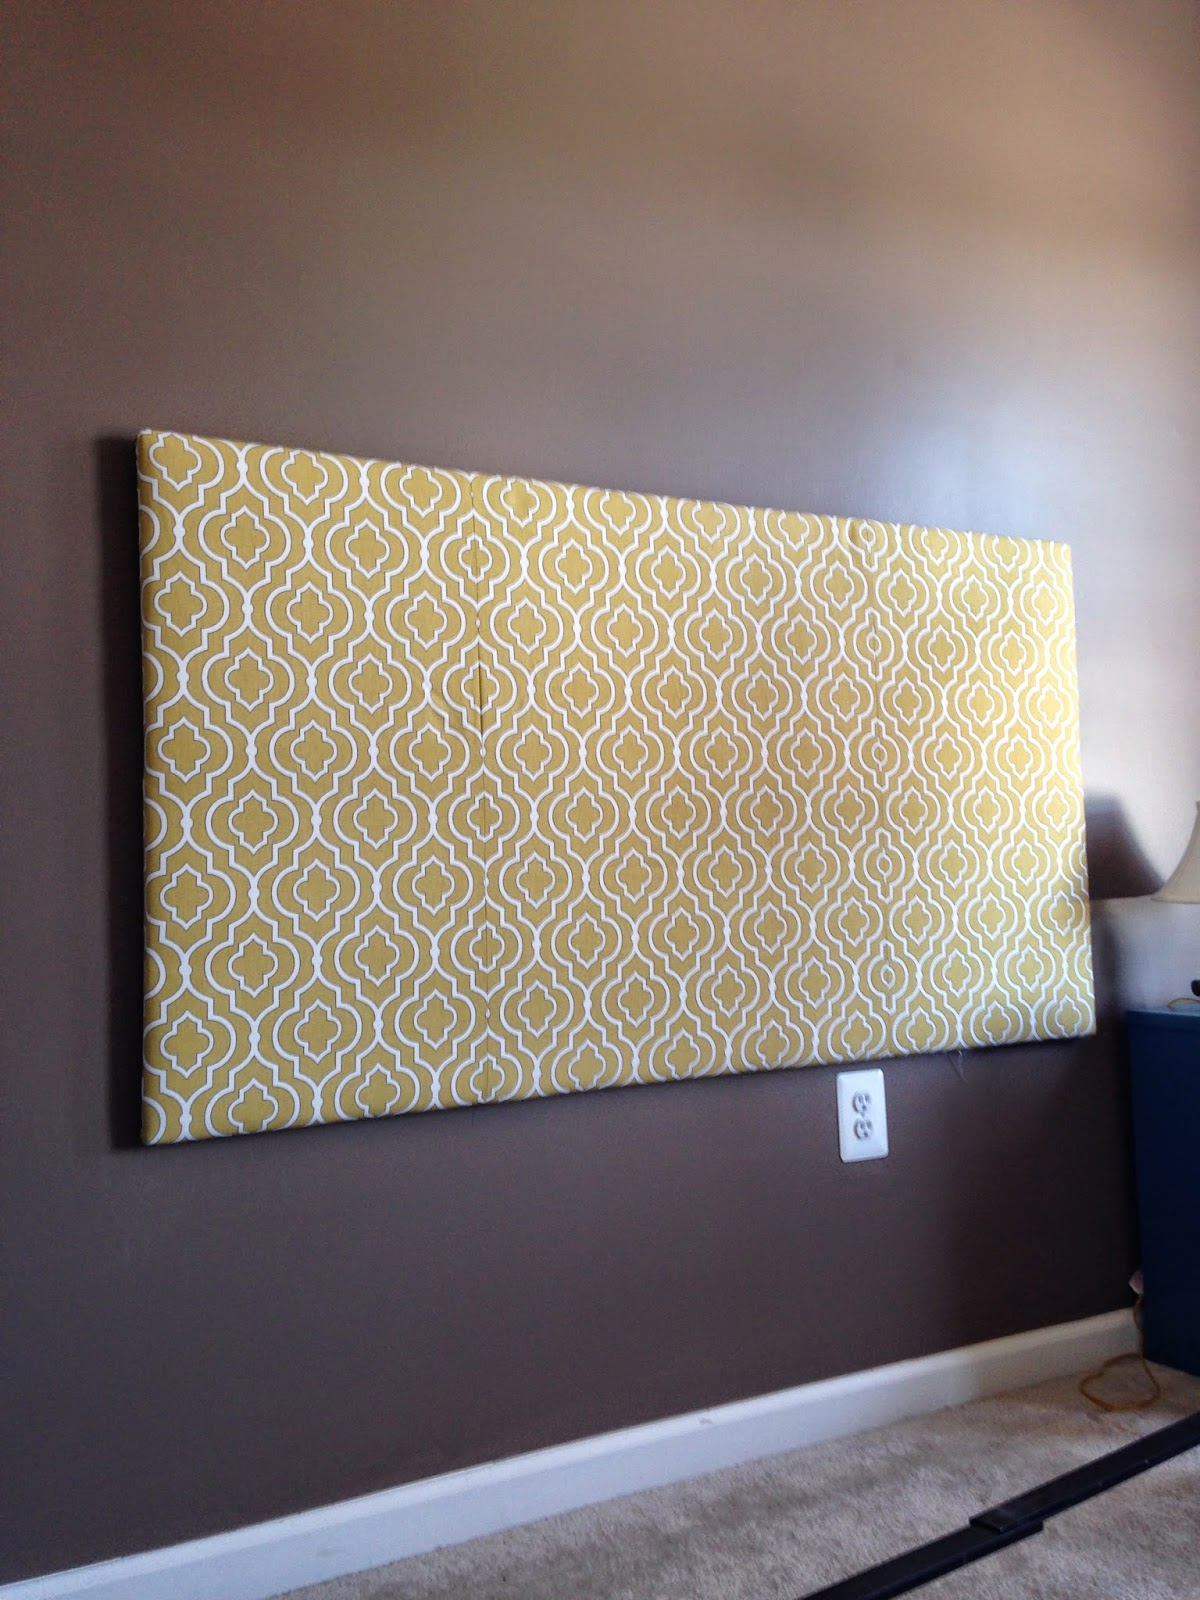 Another Crafty Day: DIY Queen Fabric Covered Headboard